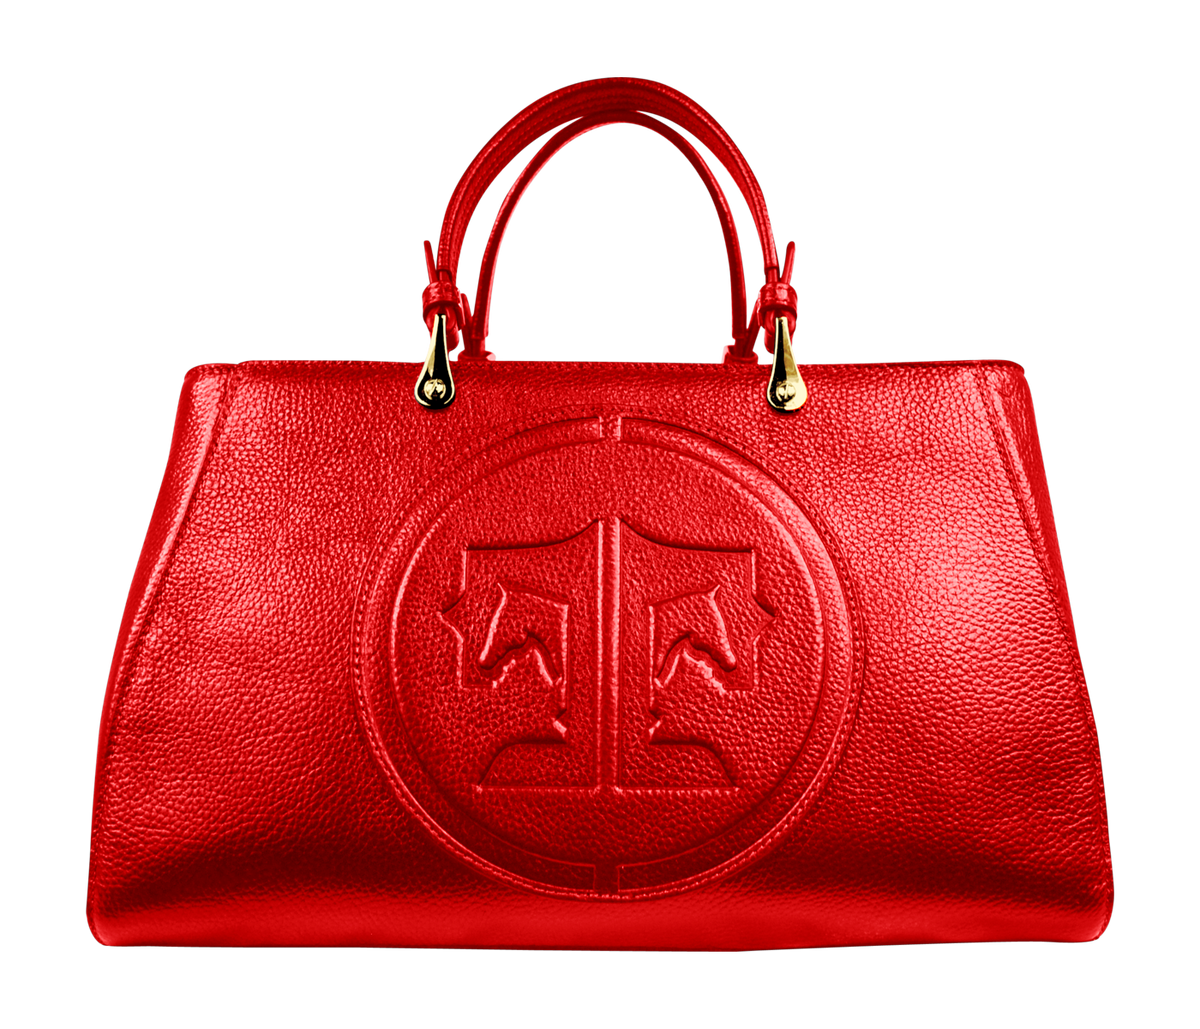 Tucker Tweed Leather Handbags Red / Signature Sedgefield Legacy: Signature